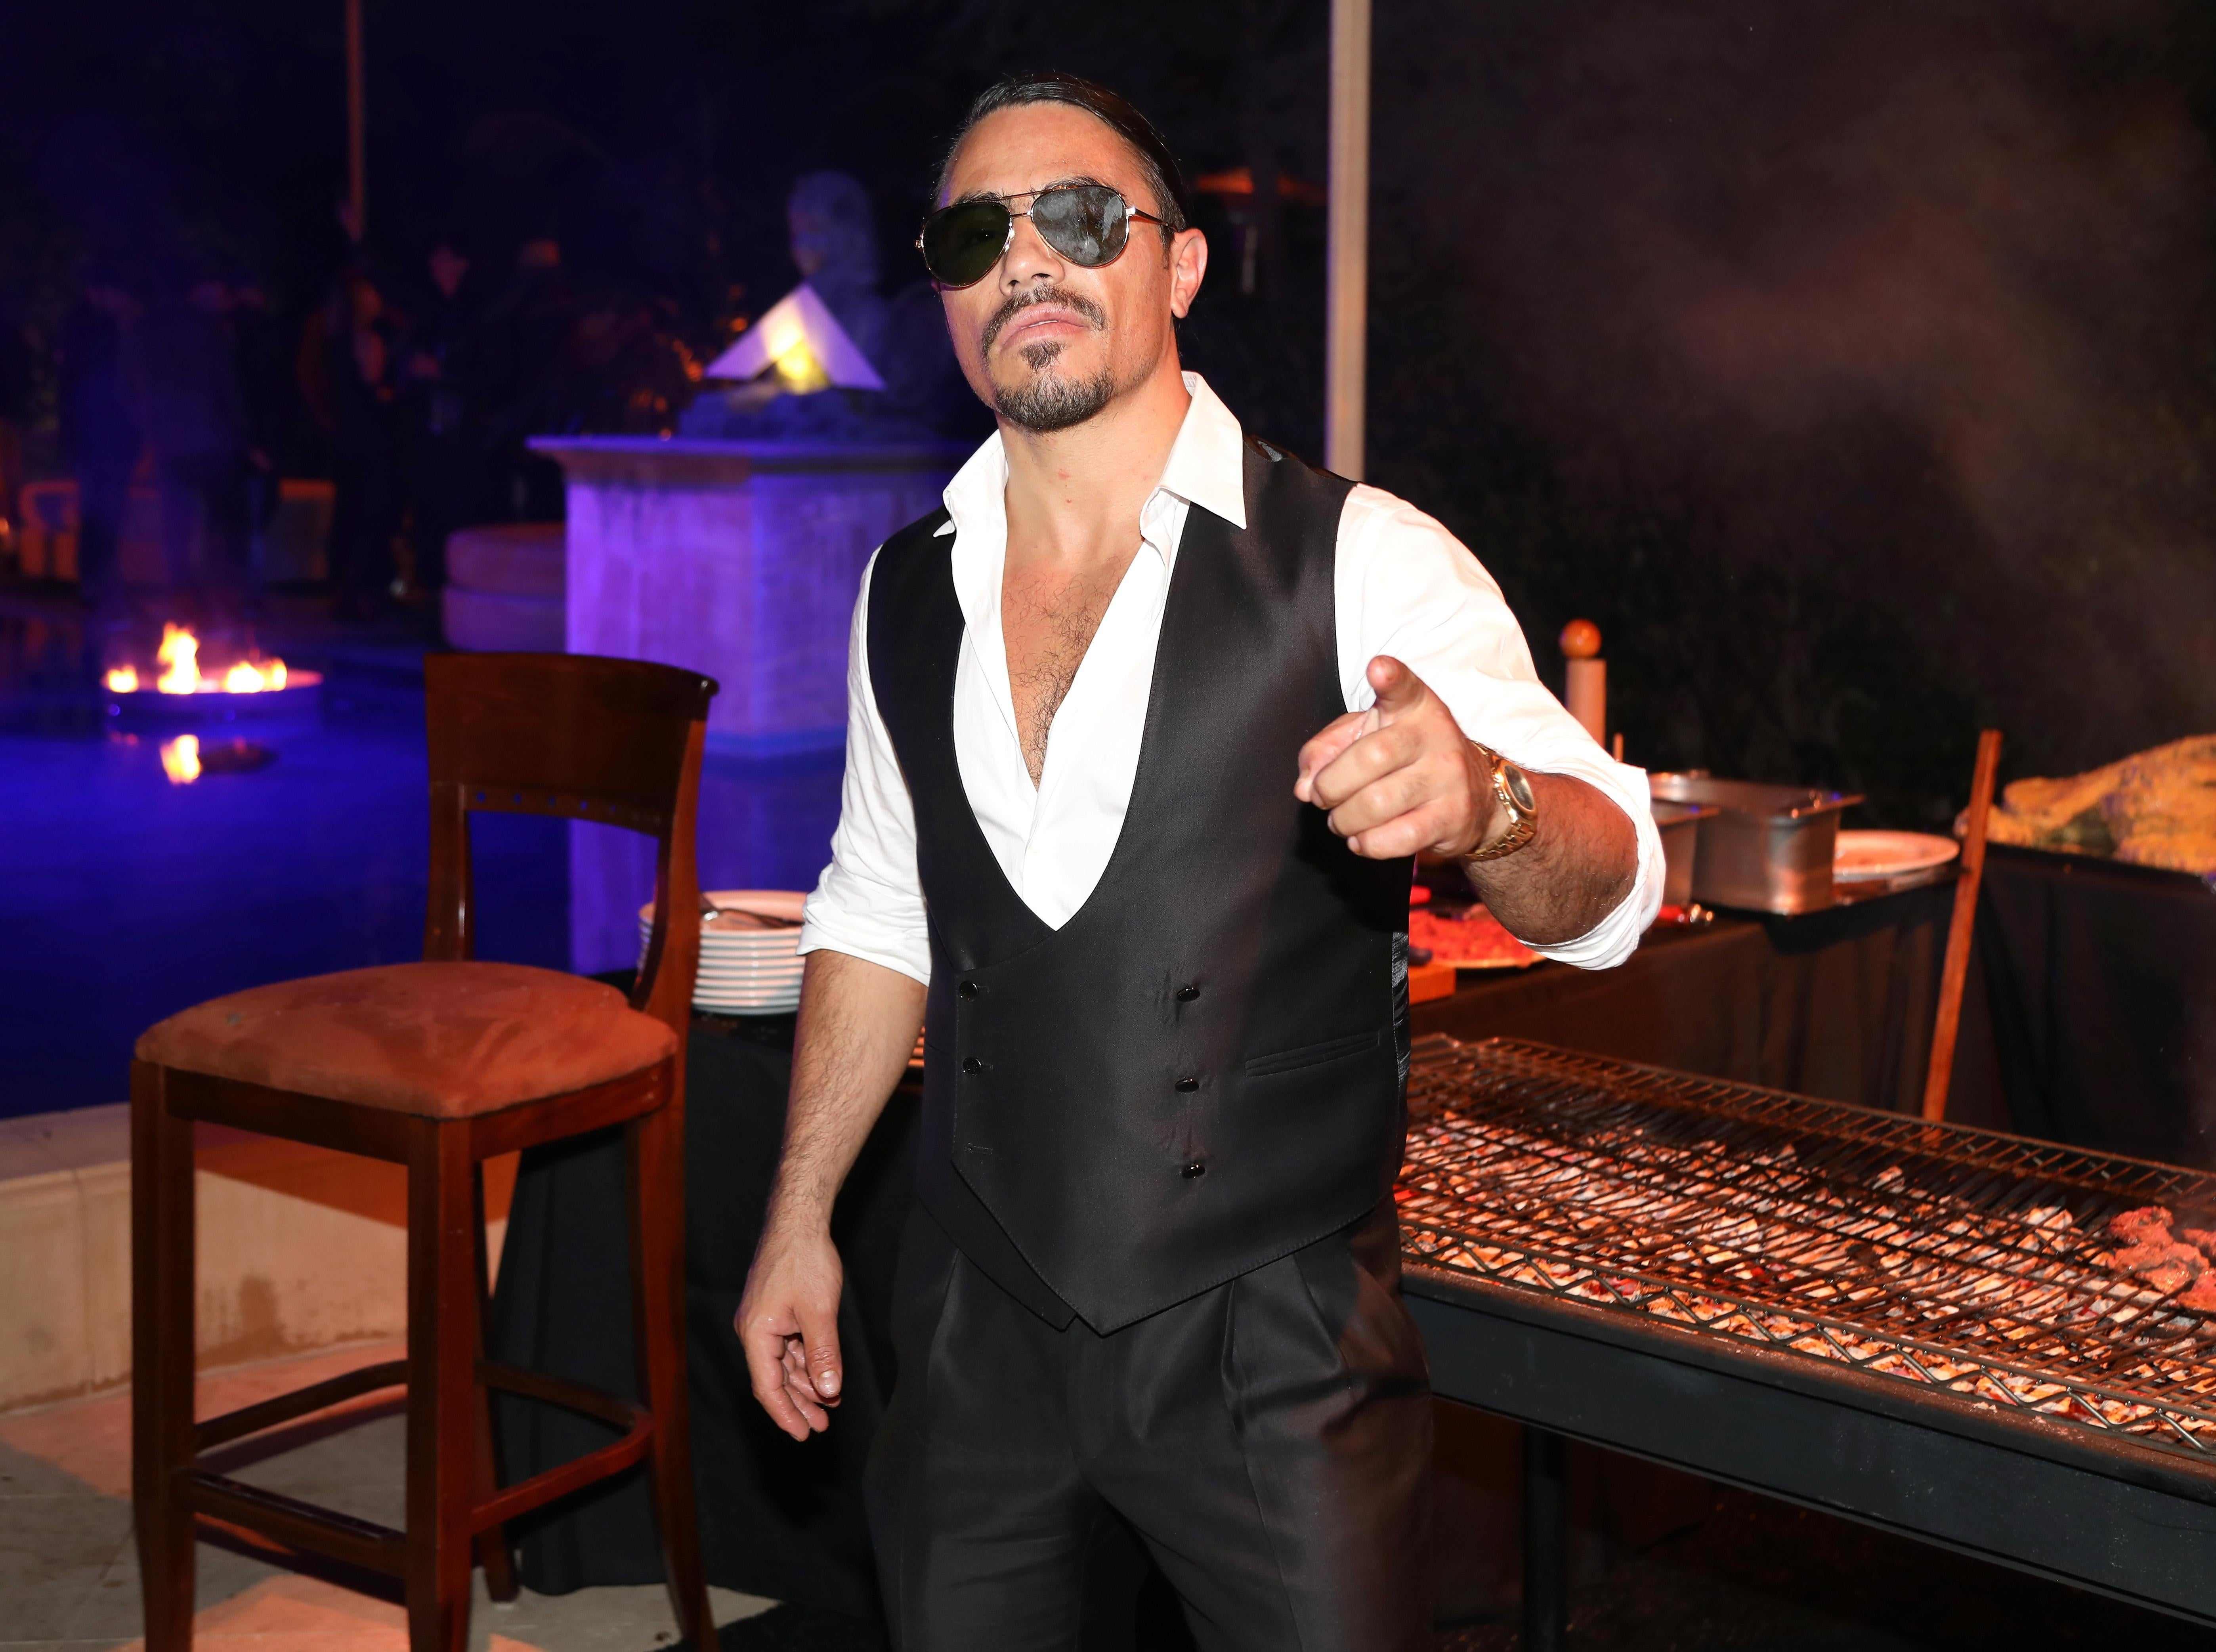 Nusret Gökçe, wearing a low-buttoned shirt and vest with sunglasses, points toward the camera while standing in front of a grill at a partylike setting.